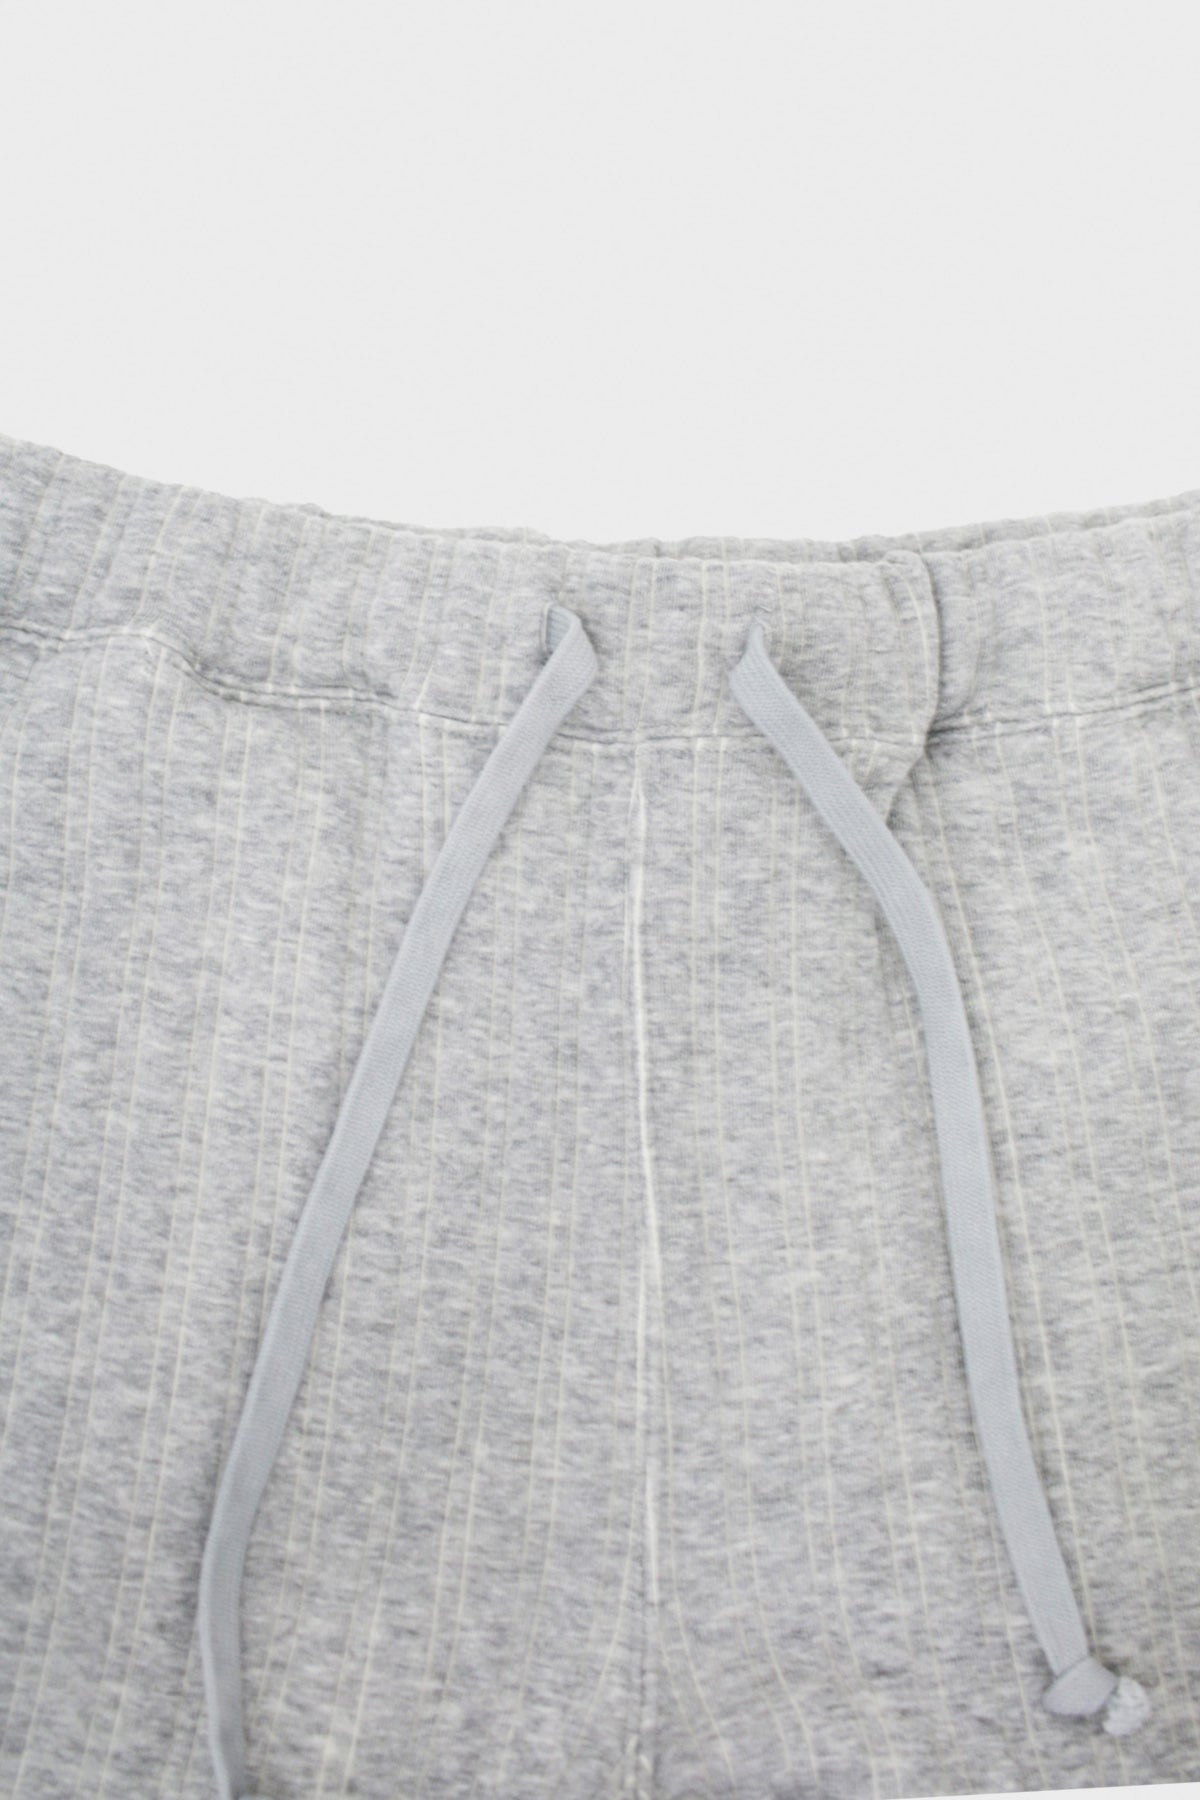 ts(s) - Knee Patch Training Pants - Gray - Canoe Club